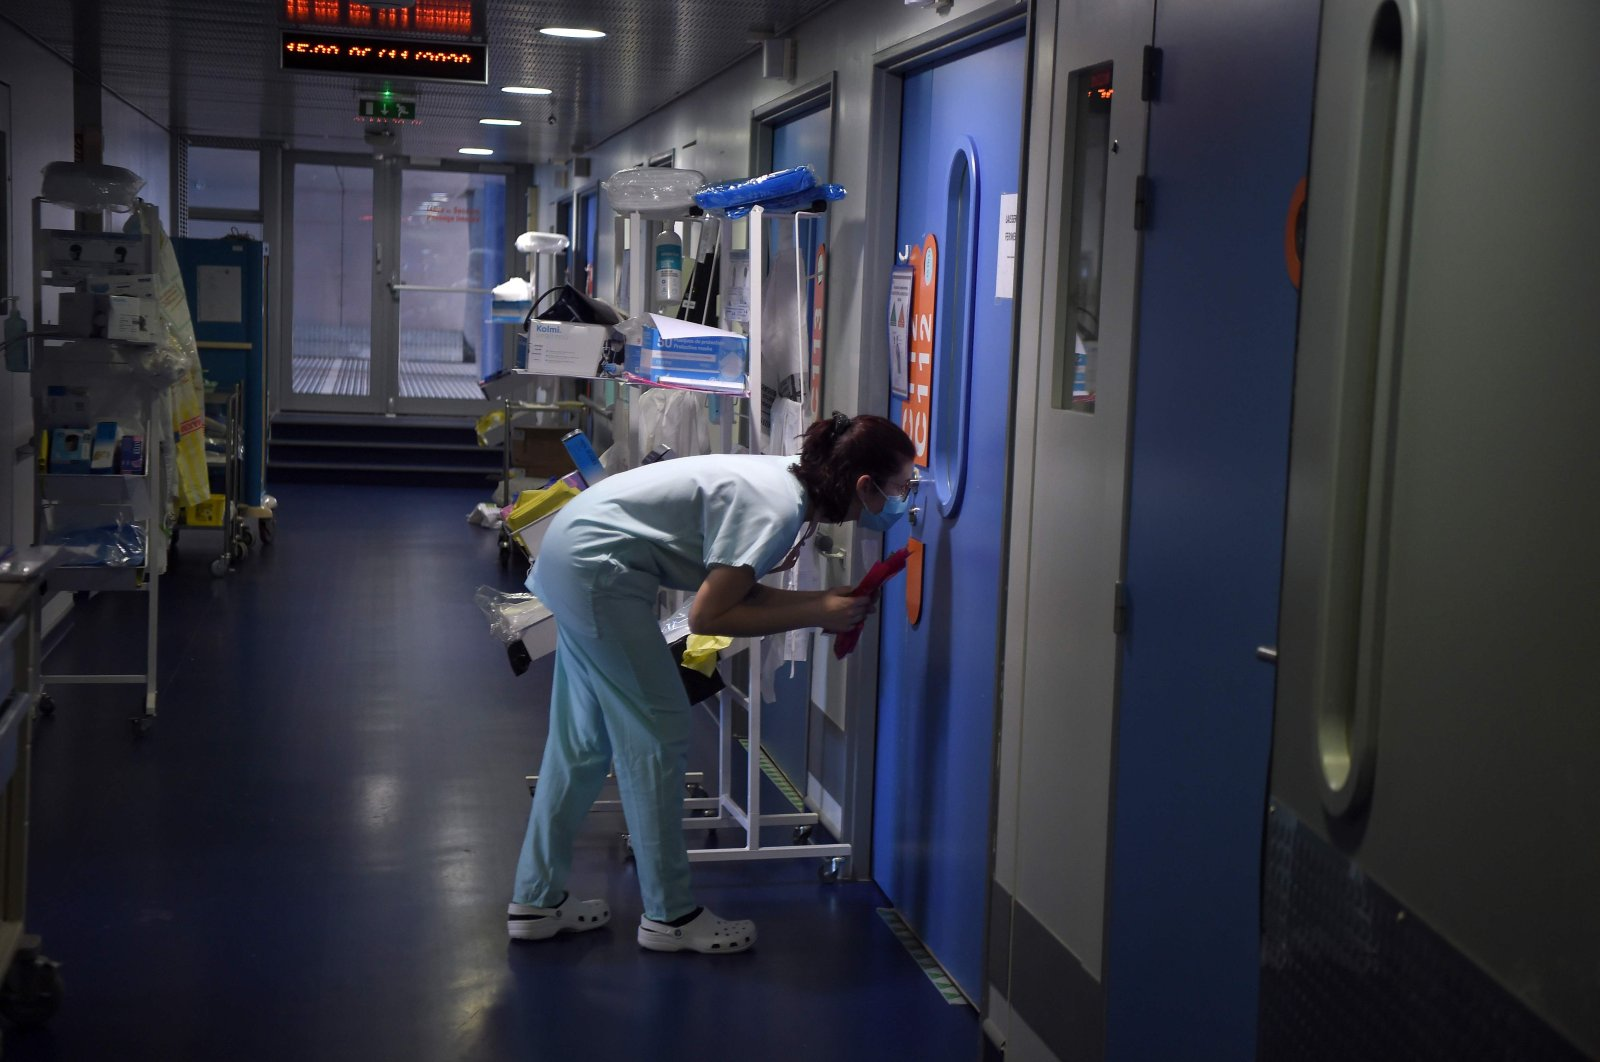 Medical staff monitor patients who have contracted coronavirus on a ward at The Hôpitaux Universitaires de Strasbourg, Strasbourg, Nov. 6, 2020. (AFP Photo)